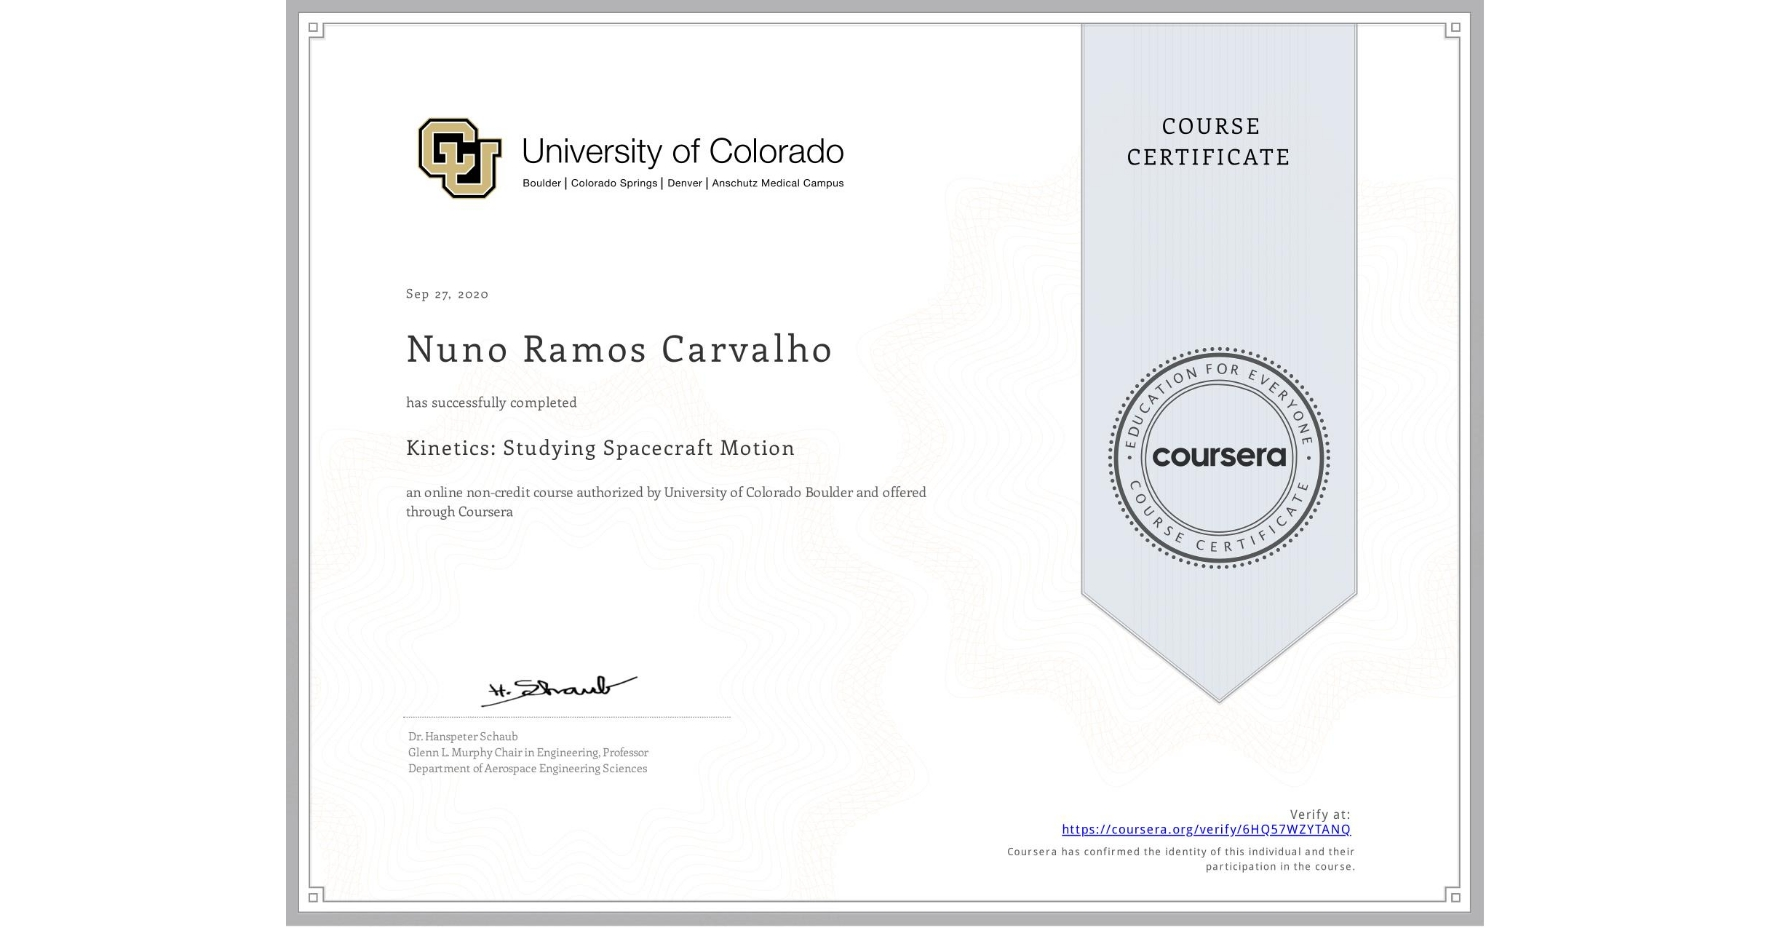 View certificate for Nuno Ramos Carvalho, Kinetics: Studying Spacecraft Motion, an online non-credit course authorized by University of Colorado Boulder and offered through Coursera